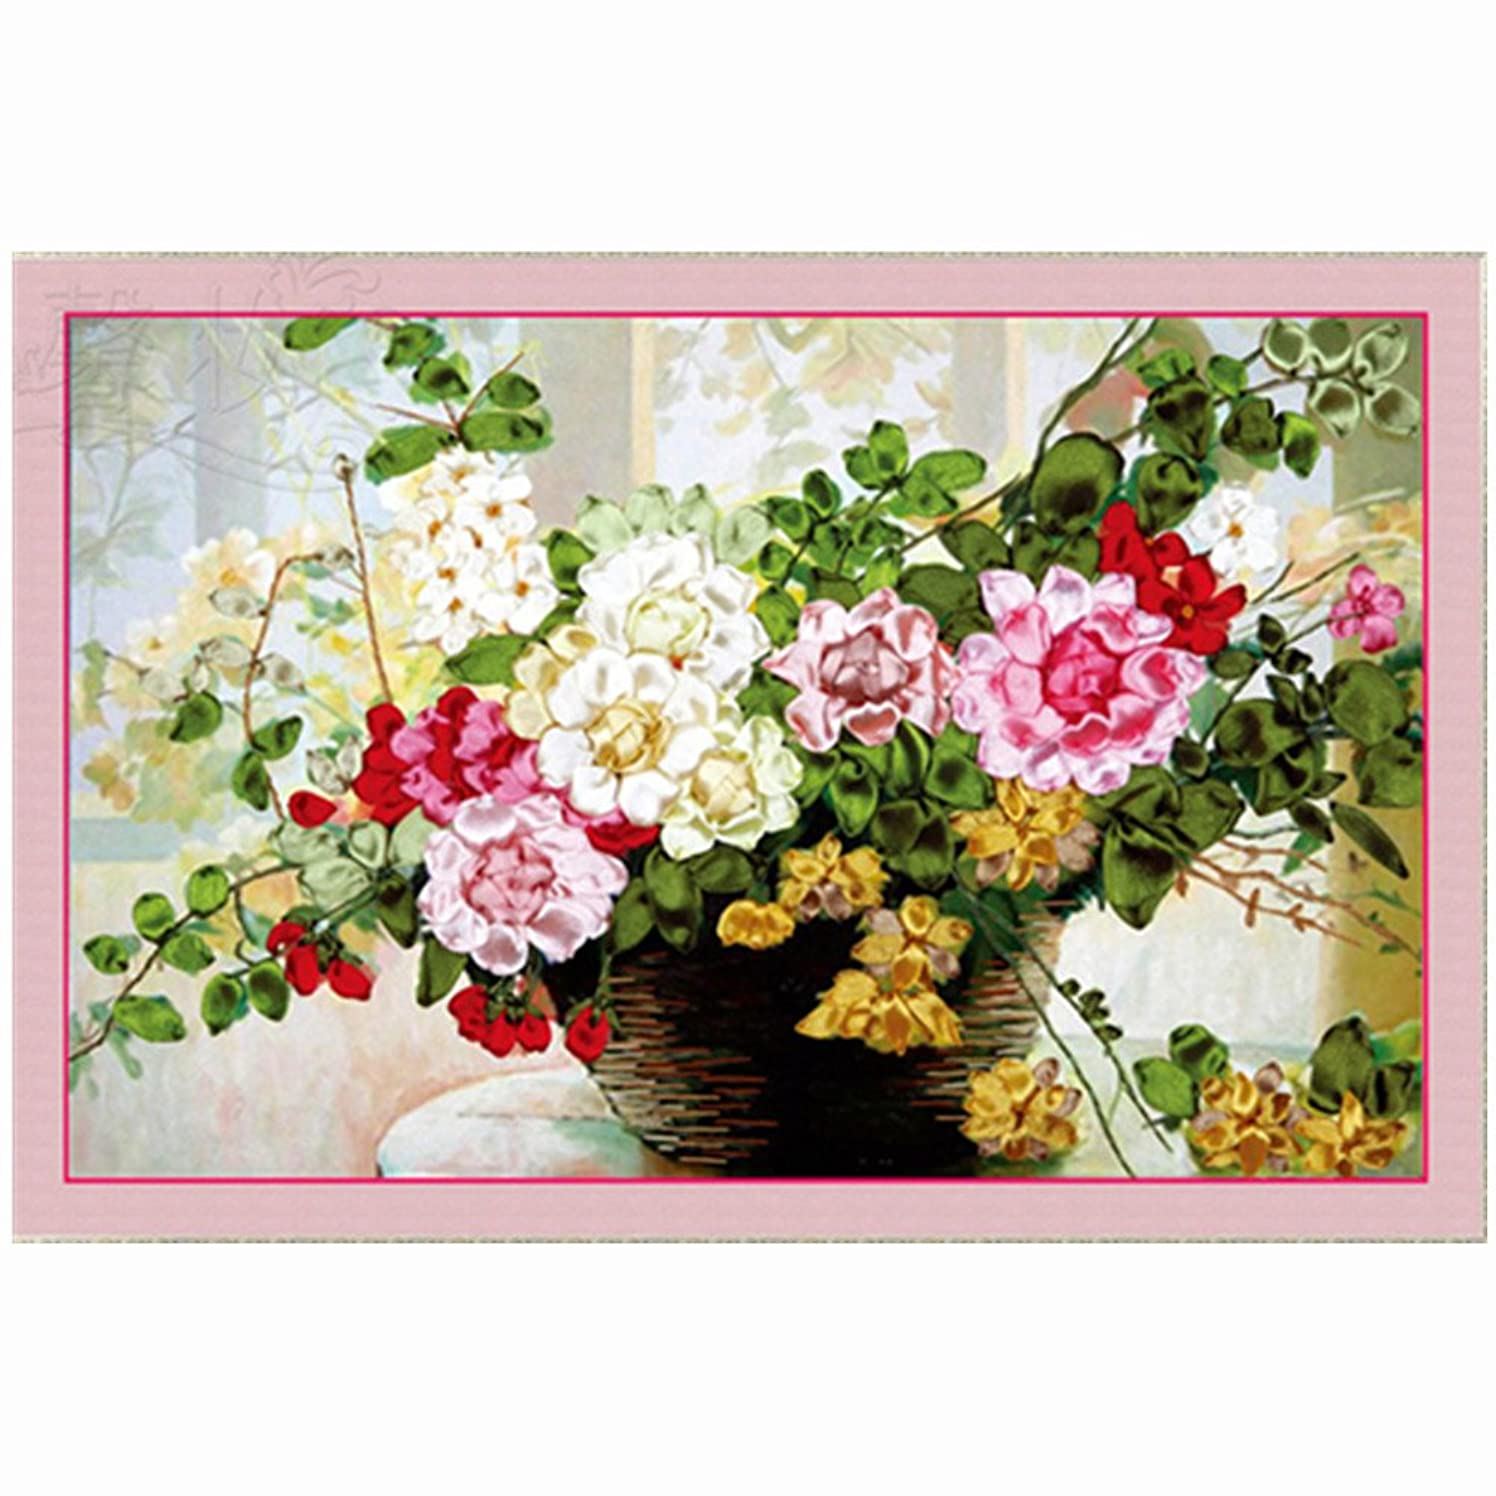 Ribbon Embroidery Spring Breeze DIY Wall Decor Stamp Ribbon Embroidery Kit No Frame Spring Breeze